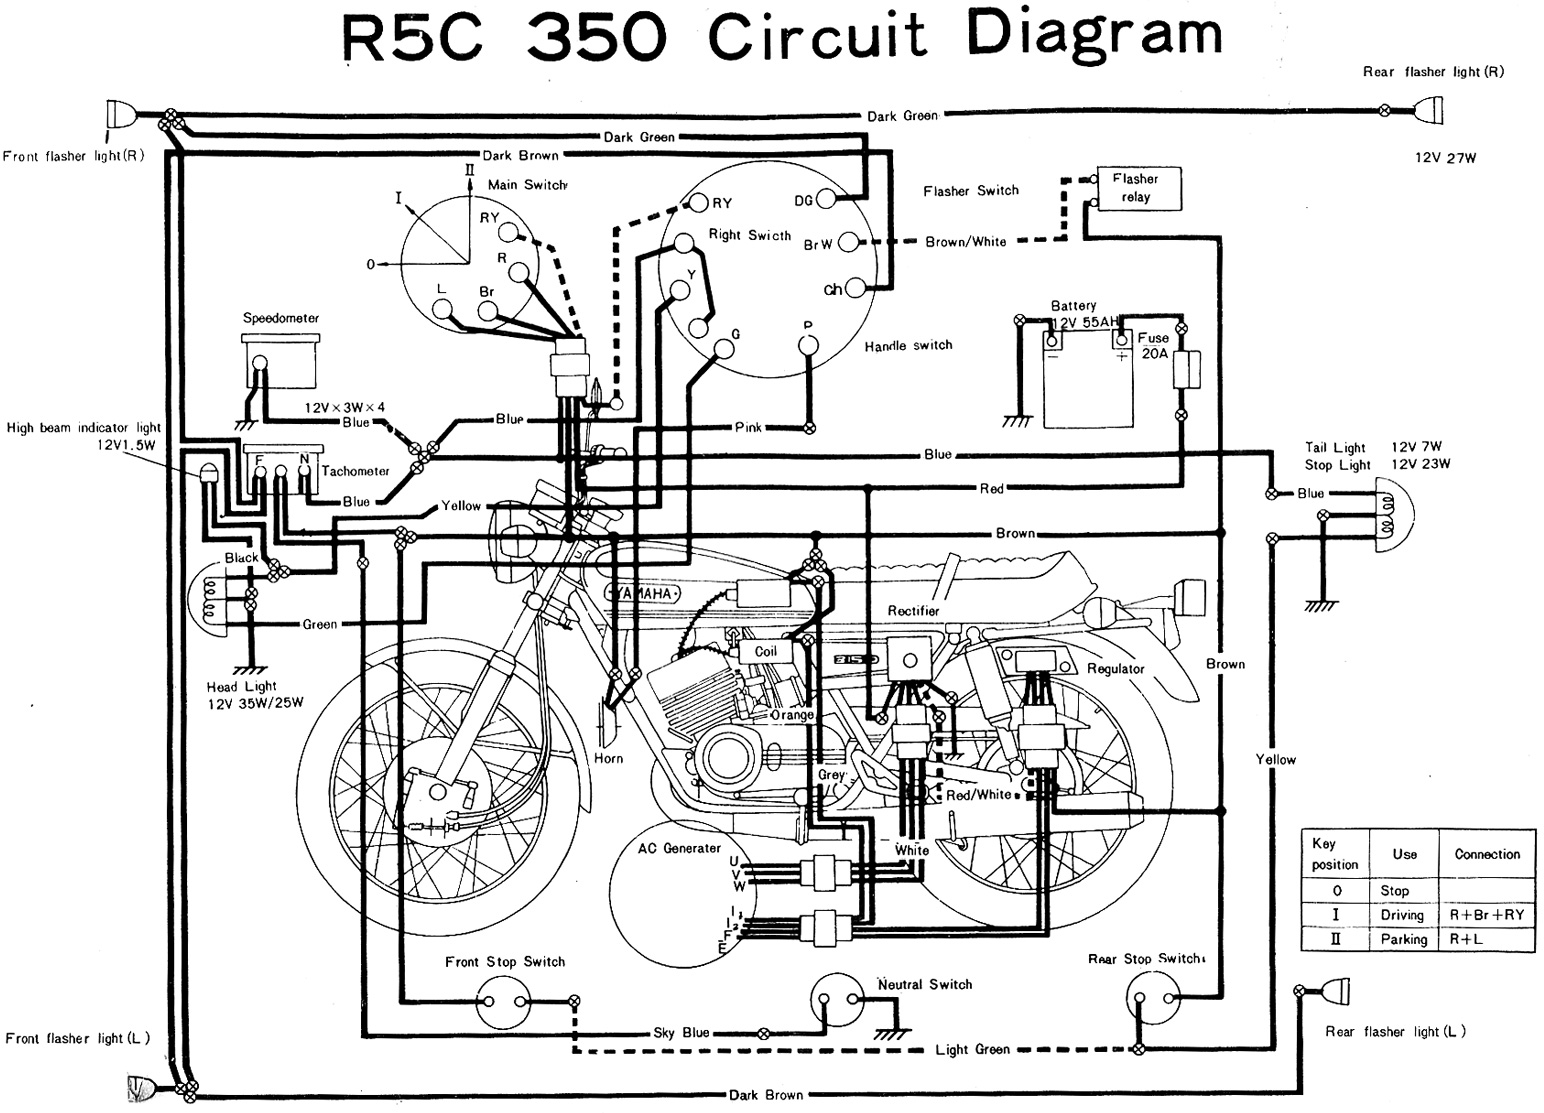 Yamaha RD350 R5C Wiring Diagram yamaha rd350 r5c wiring diagram evan fell motorcycle worksevan electrical wiring schematic at alyssarenee.co